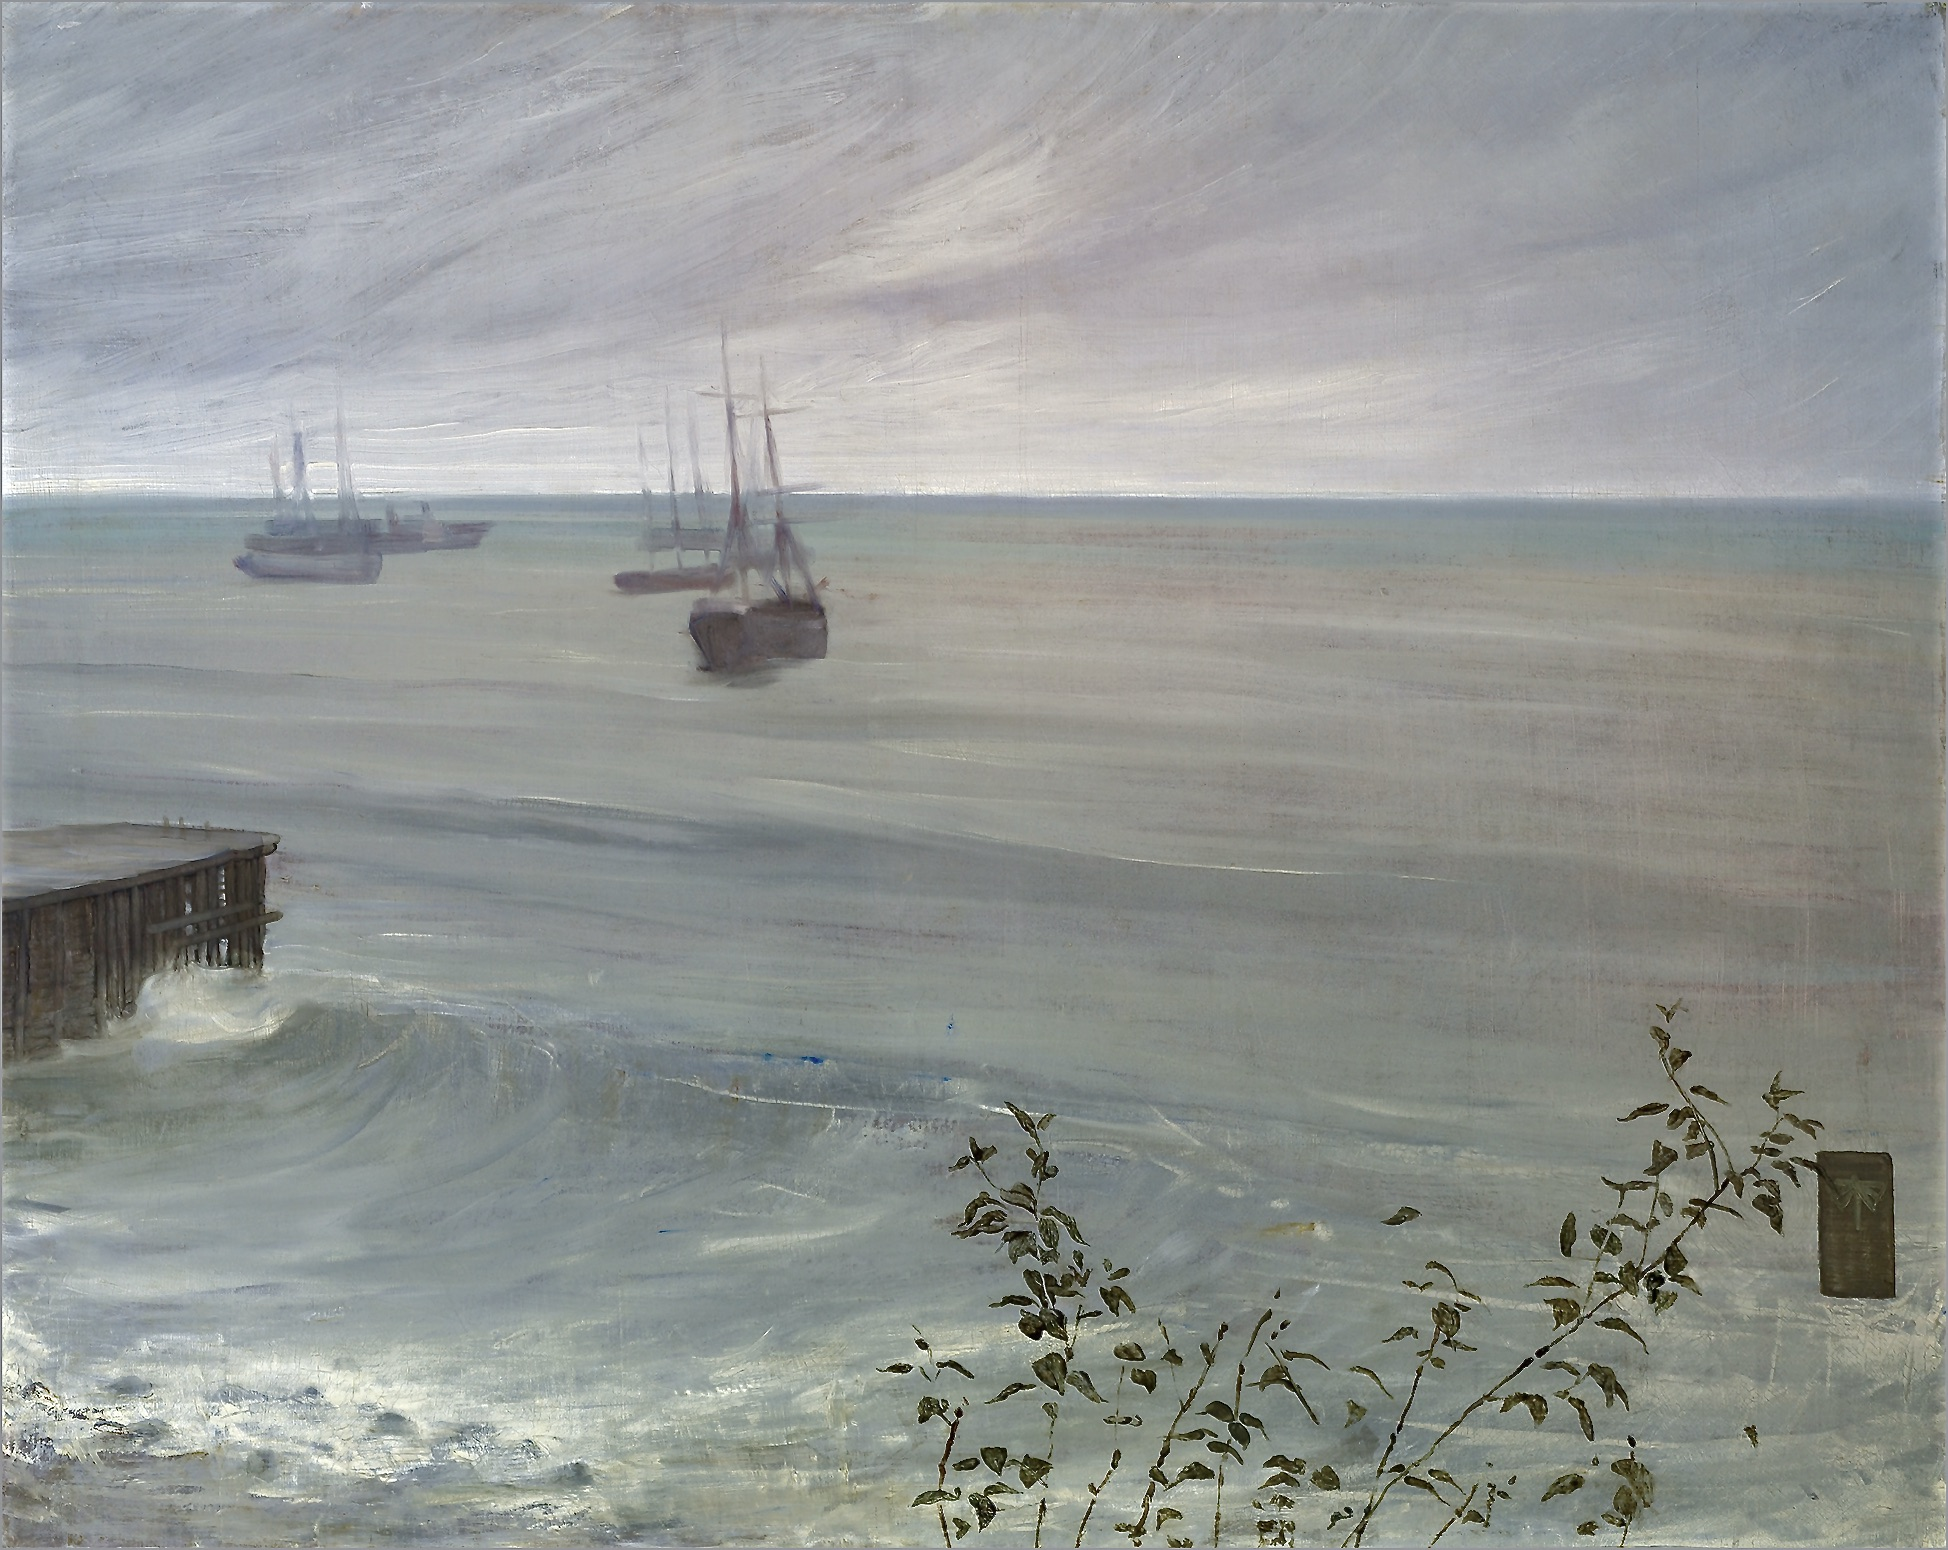 Whistler_James_Symphony_in_Grey_and_Green_The_Ocean_1866-72